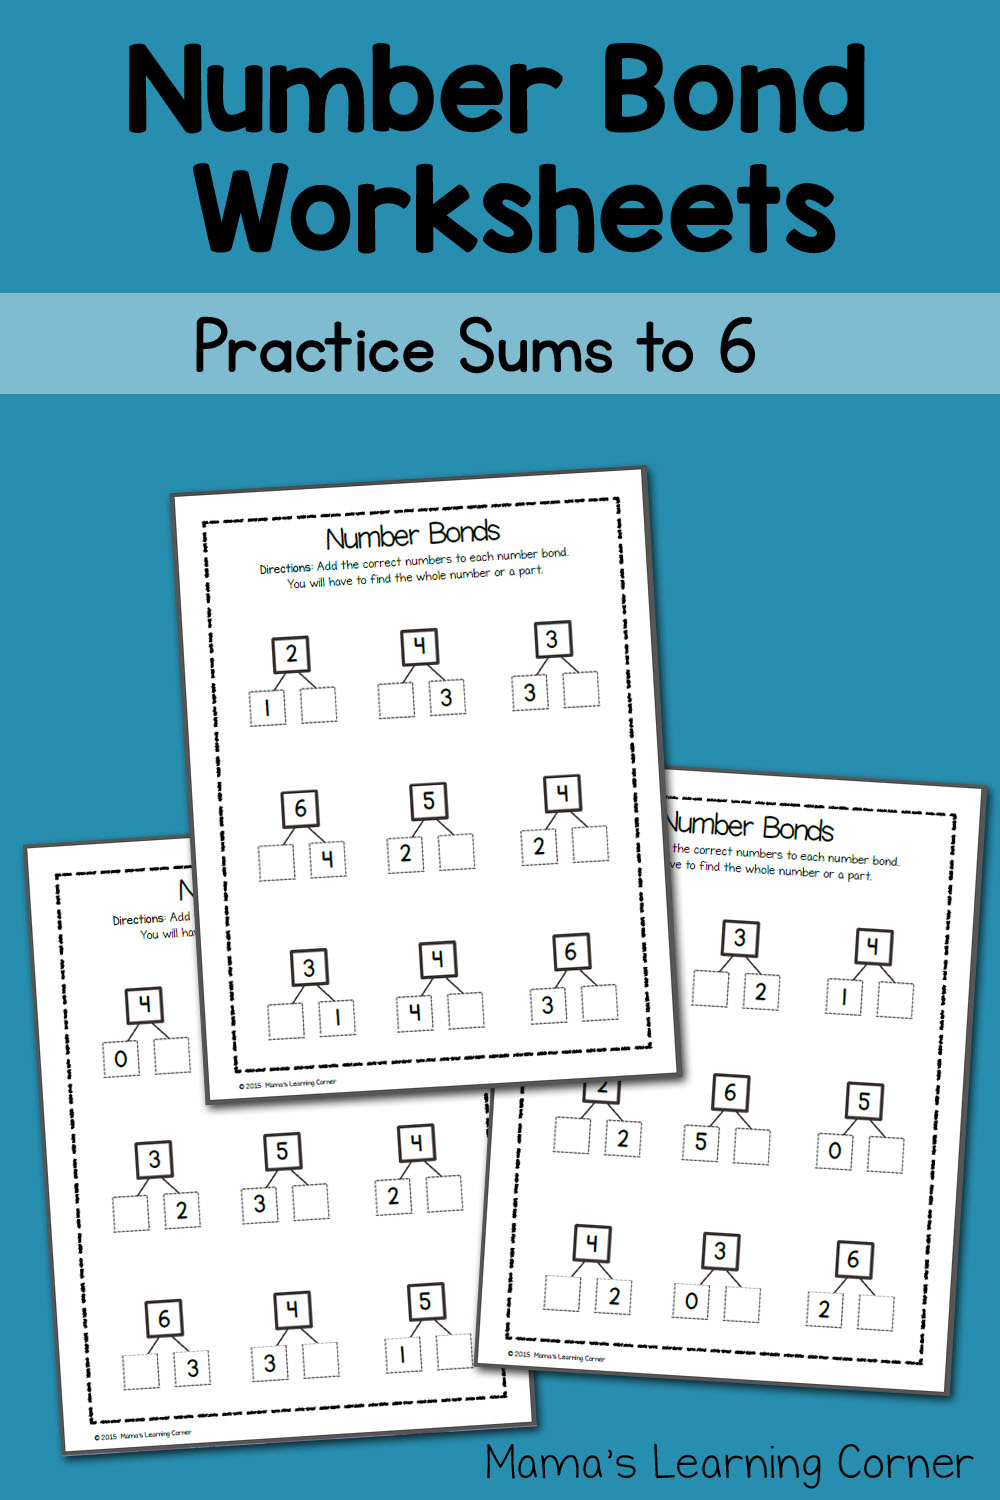 medium resolution of Number Bond Worksheets: Sums to 6 - Mamas Learning Corner